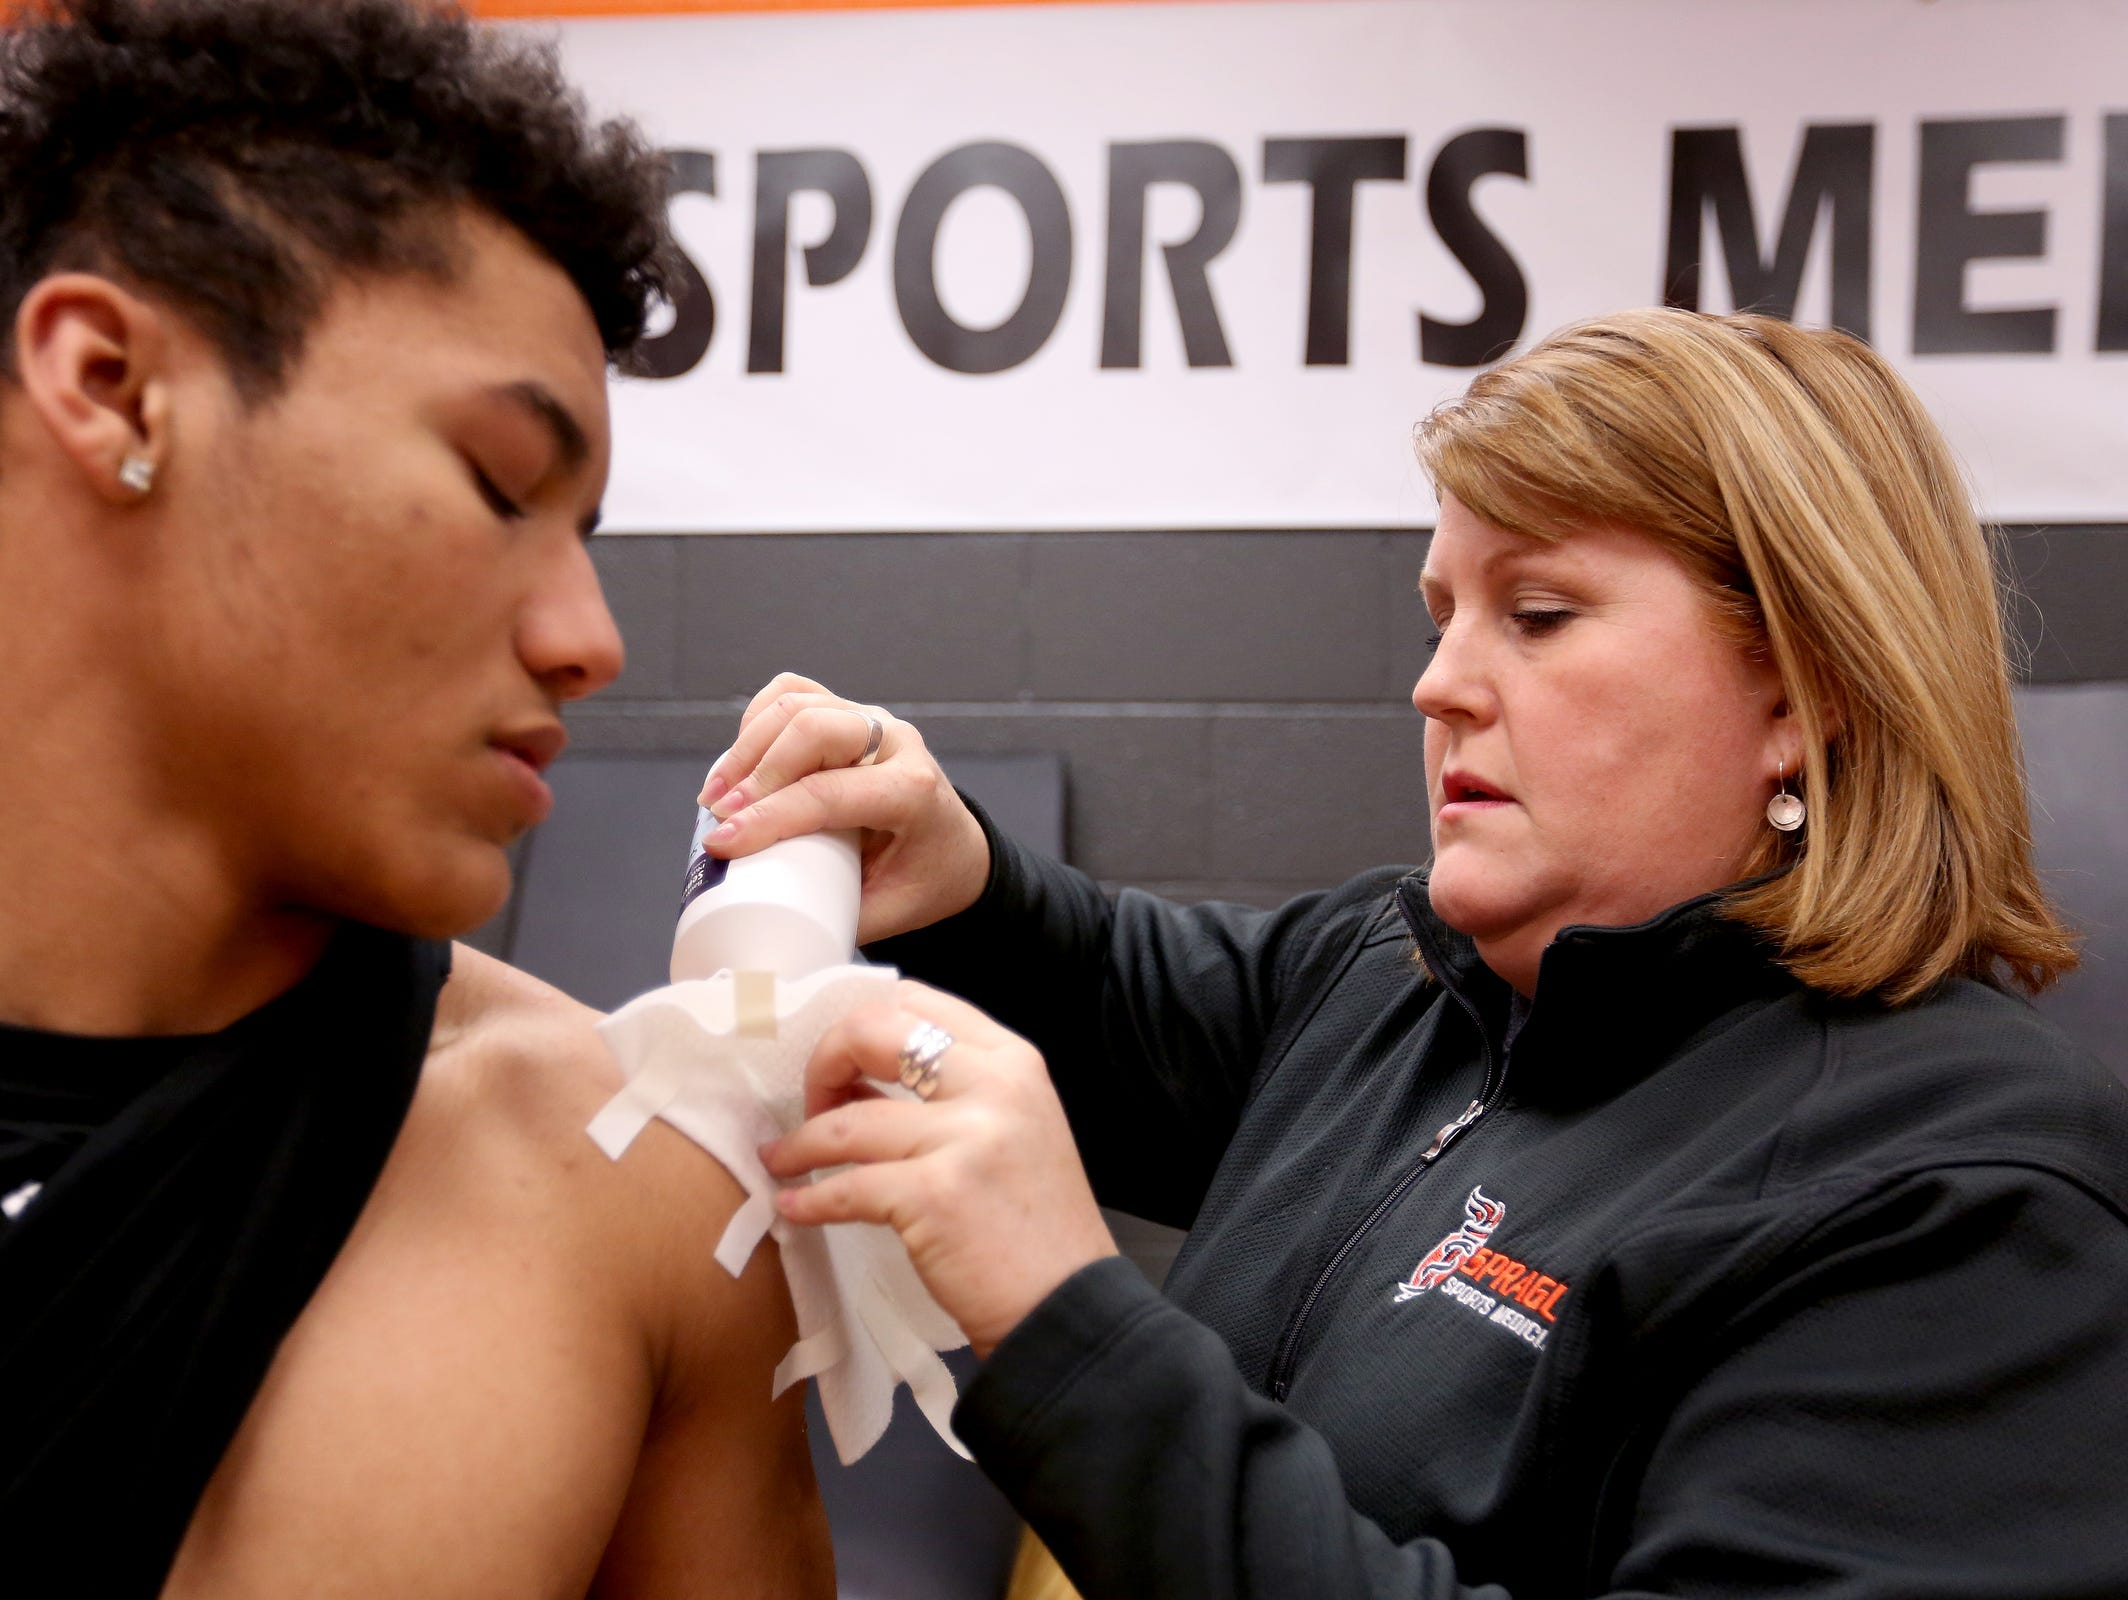 Athletic Trainer Amy West puts a bandage on the shoulder of Gejuan Lancaster, a freshman baseball player, at Sprague High School in Salem on Tuesday, April 5, 2016.